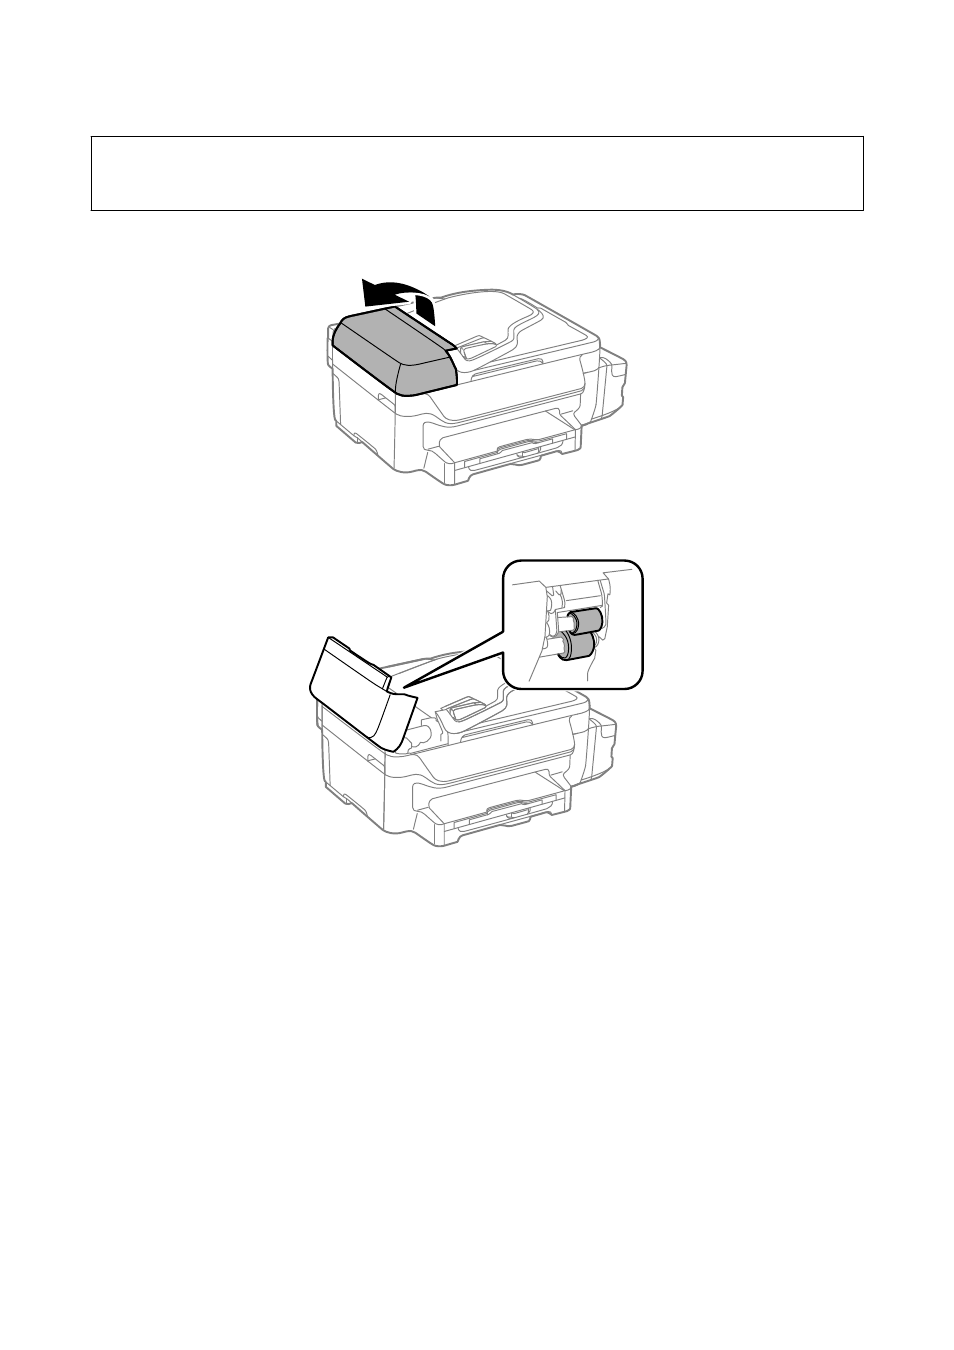 Epson EcoTank ET-4550 User Manual | Page 89 / 145 | Also for